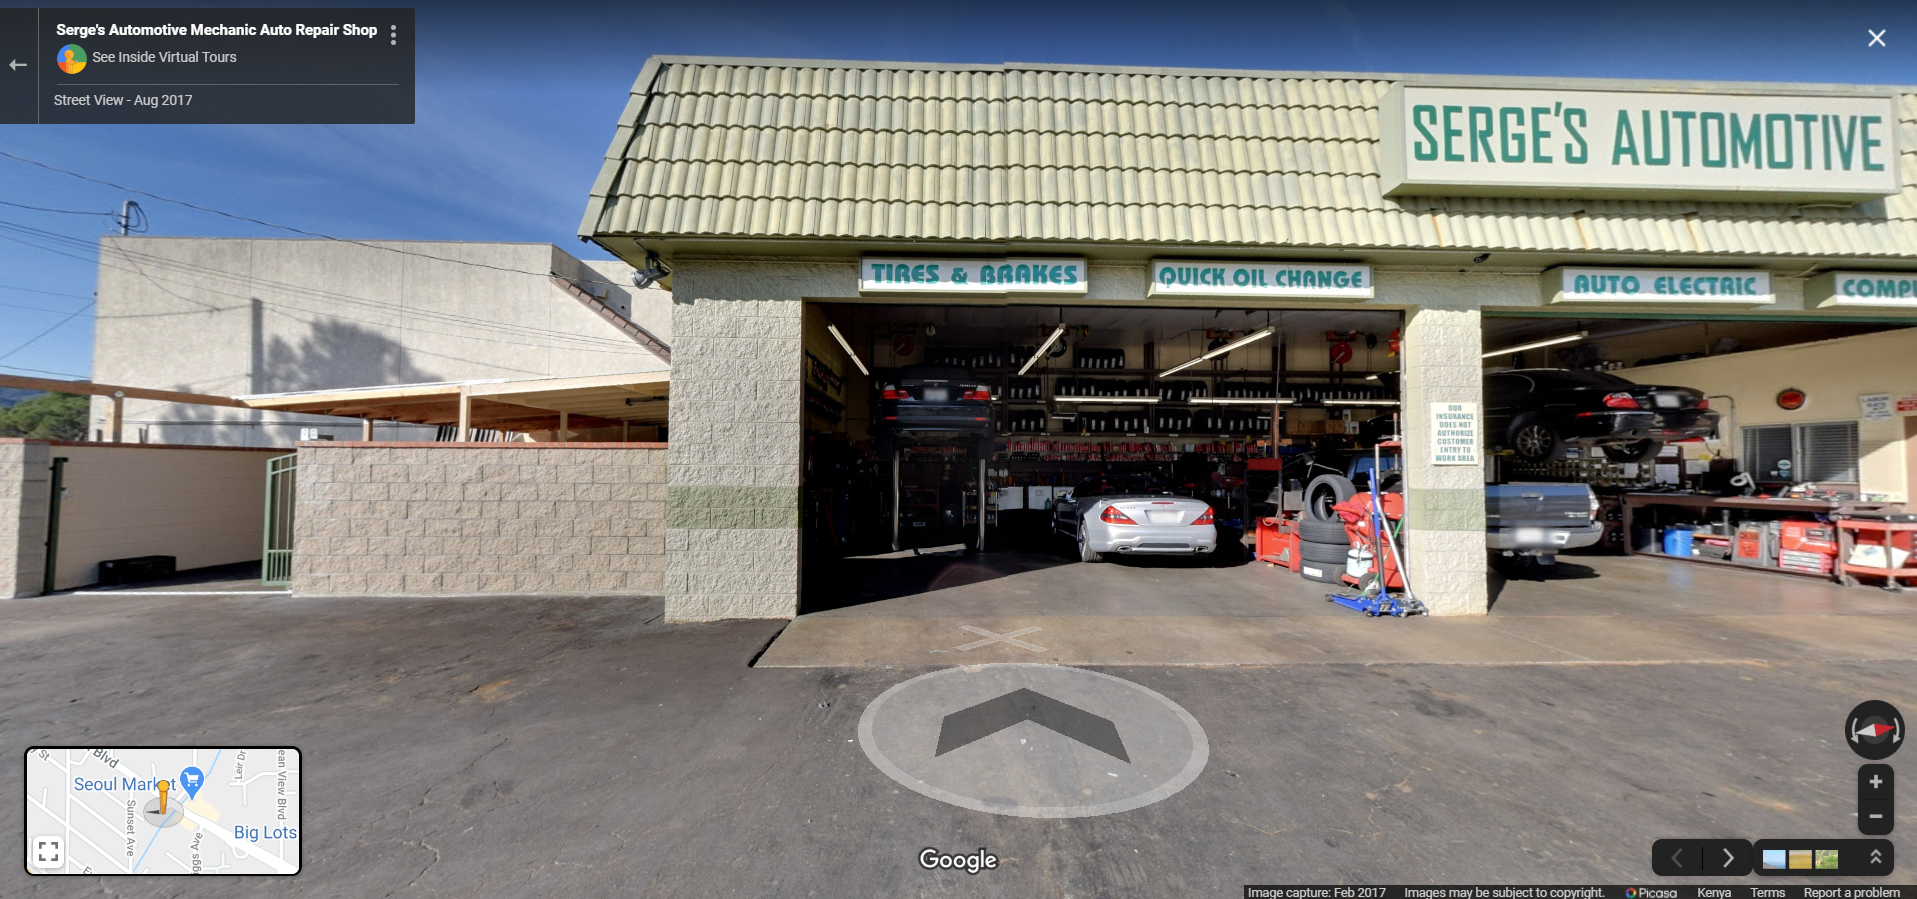 Serge's Automotive Mechanic Auto Repair Shop - La Crescenta